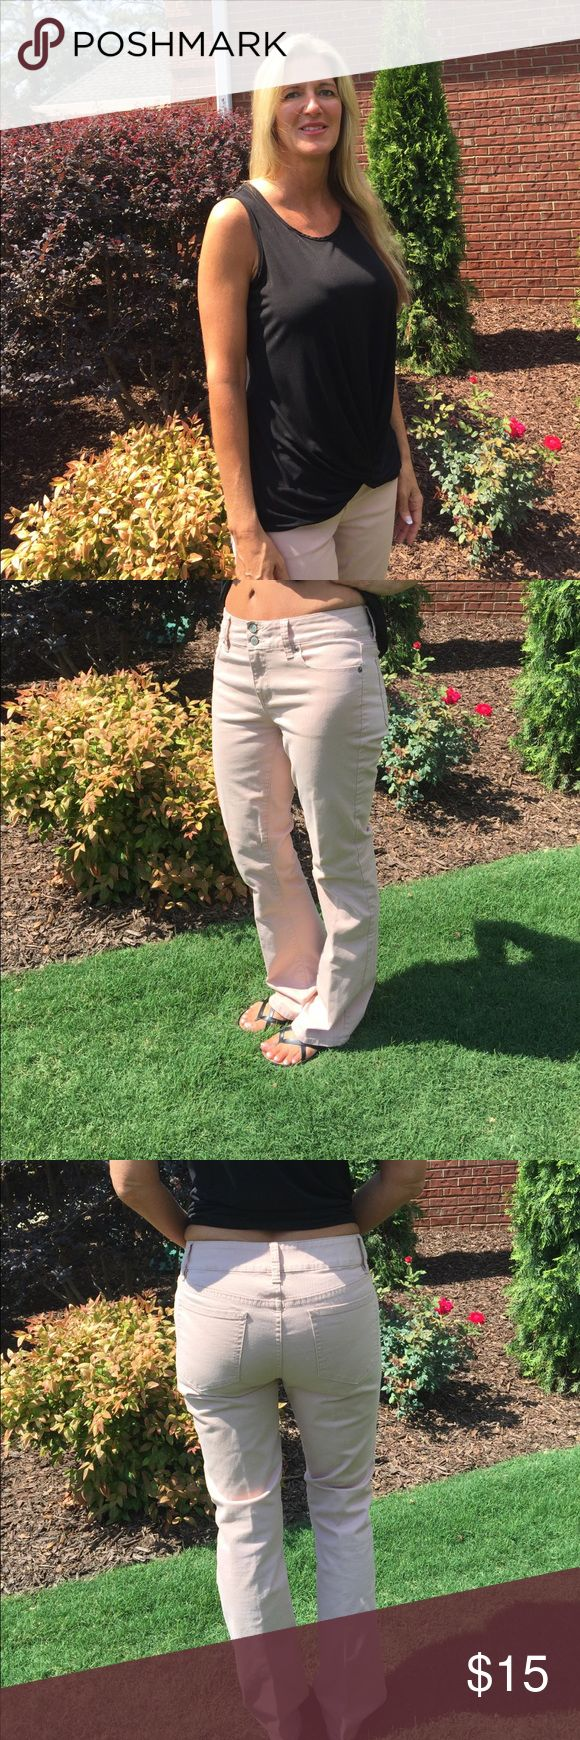 London Jeans Pink jeans. Straight fit trough thighs with boot cut. london jean Jeans Flare & Wide Leg